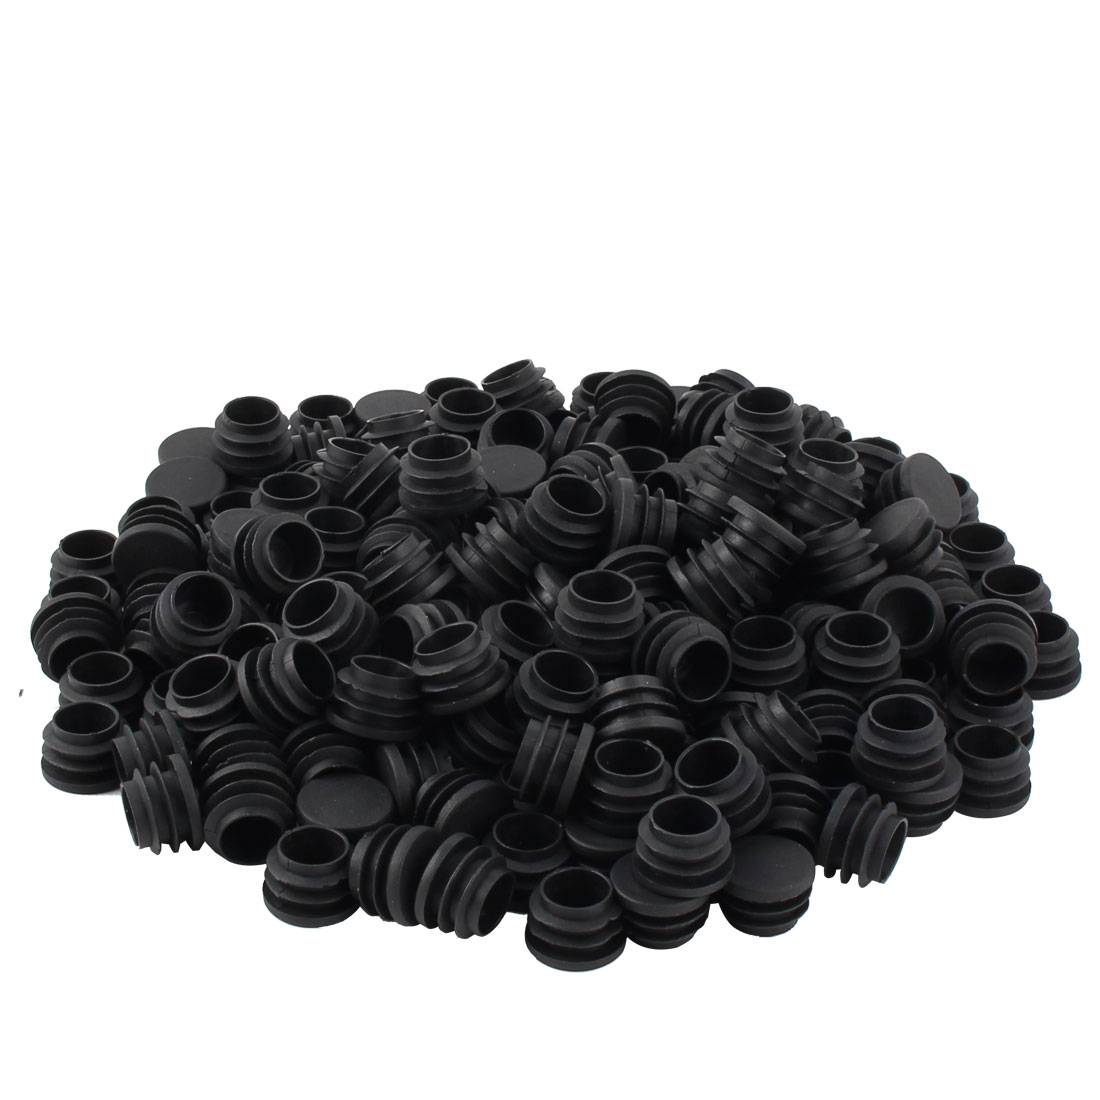 Furniture Table Chair Legs Plastic Flat Base Round Tube Pipe Insert Cap Cover Black 25mm Dia 200pcs